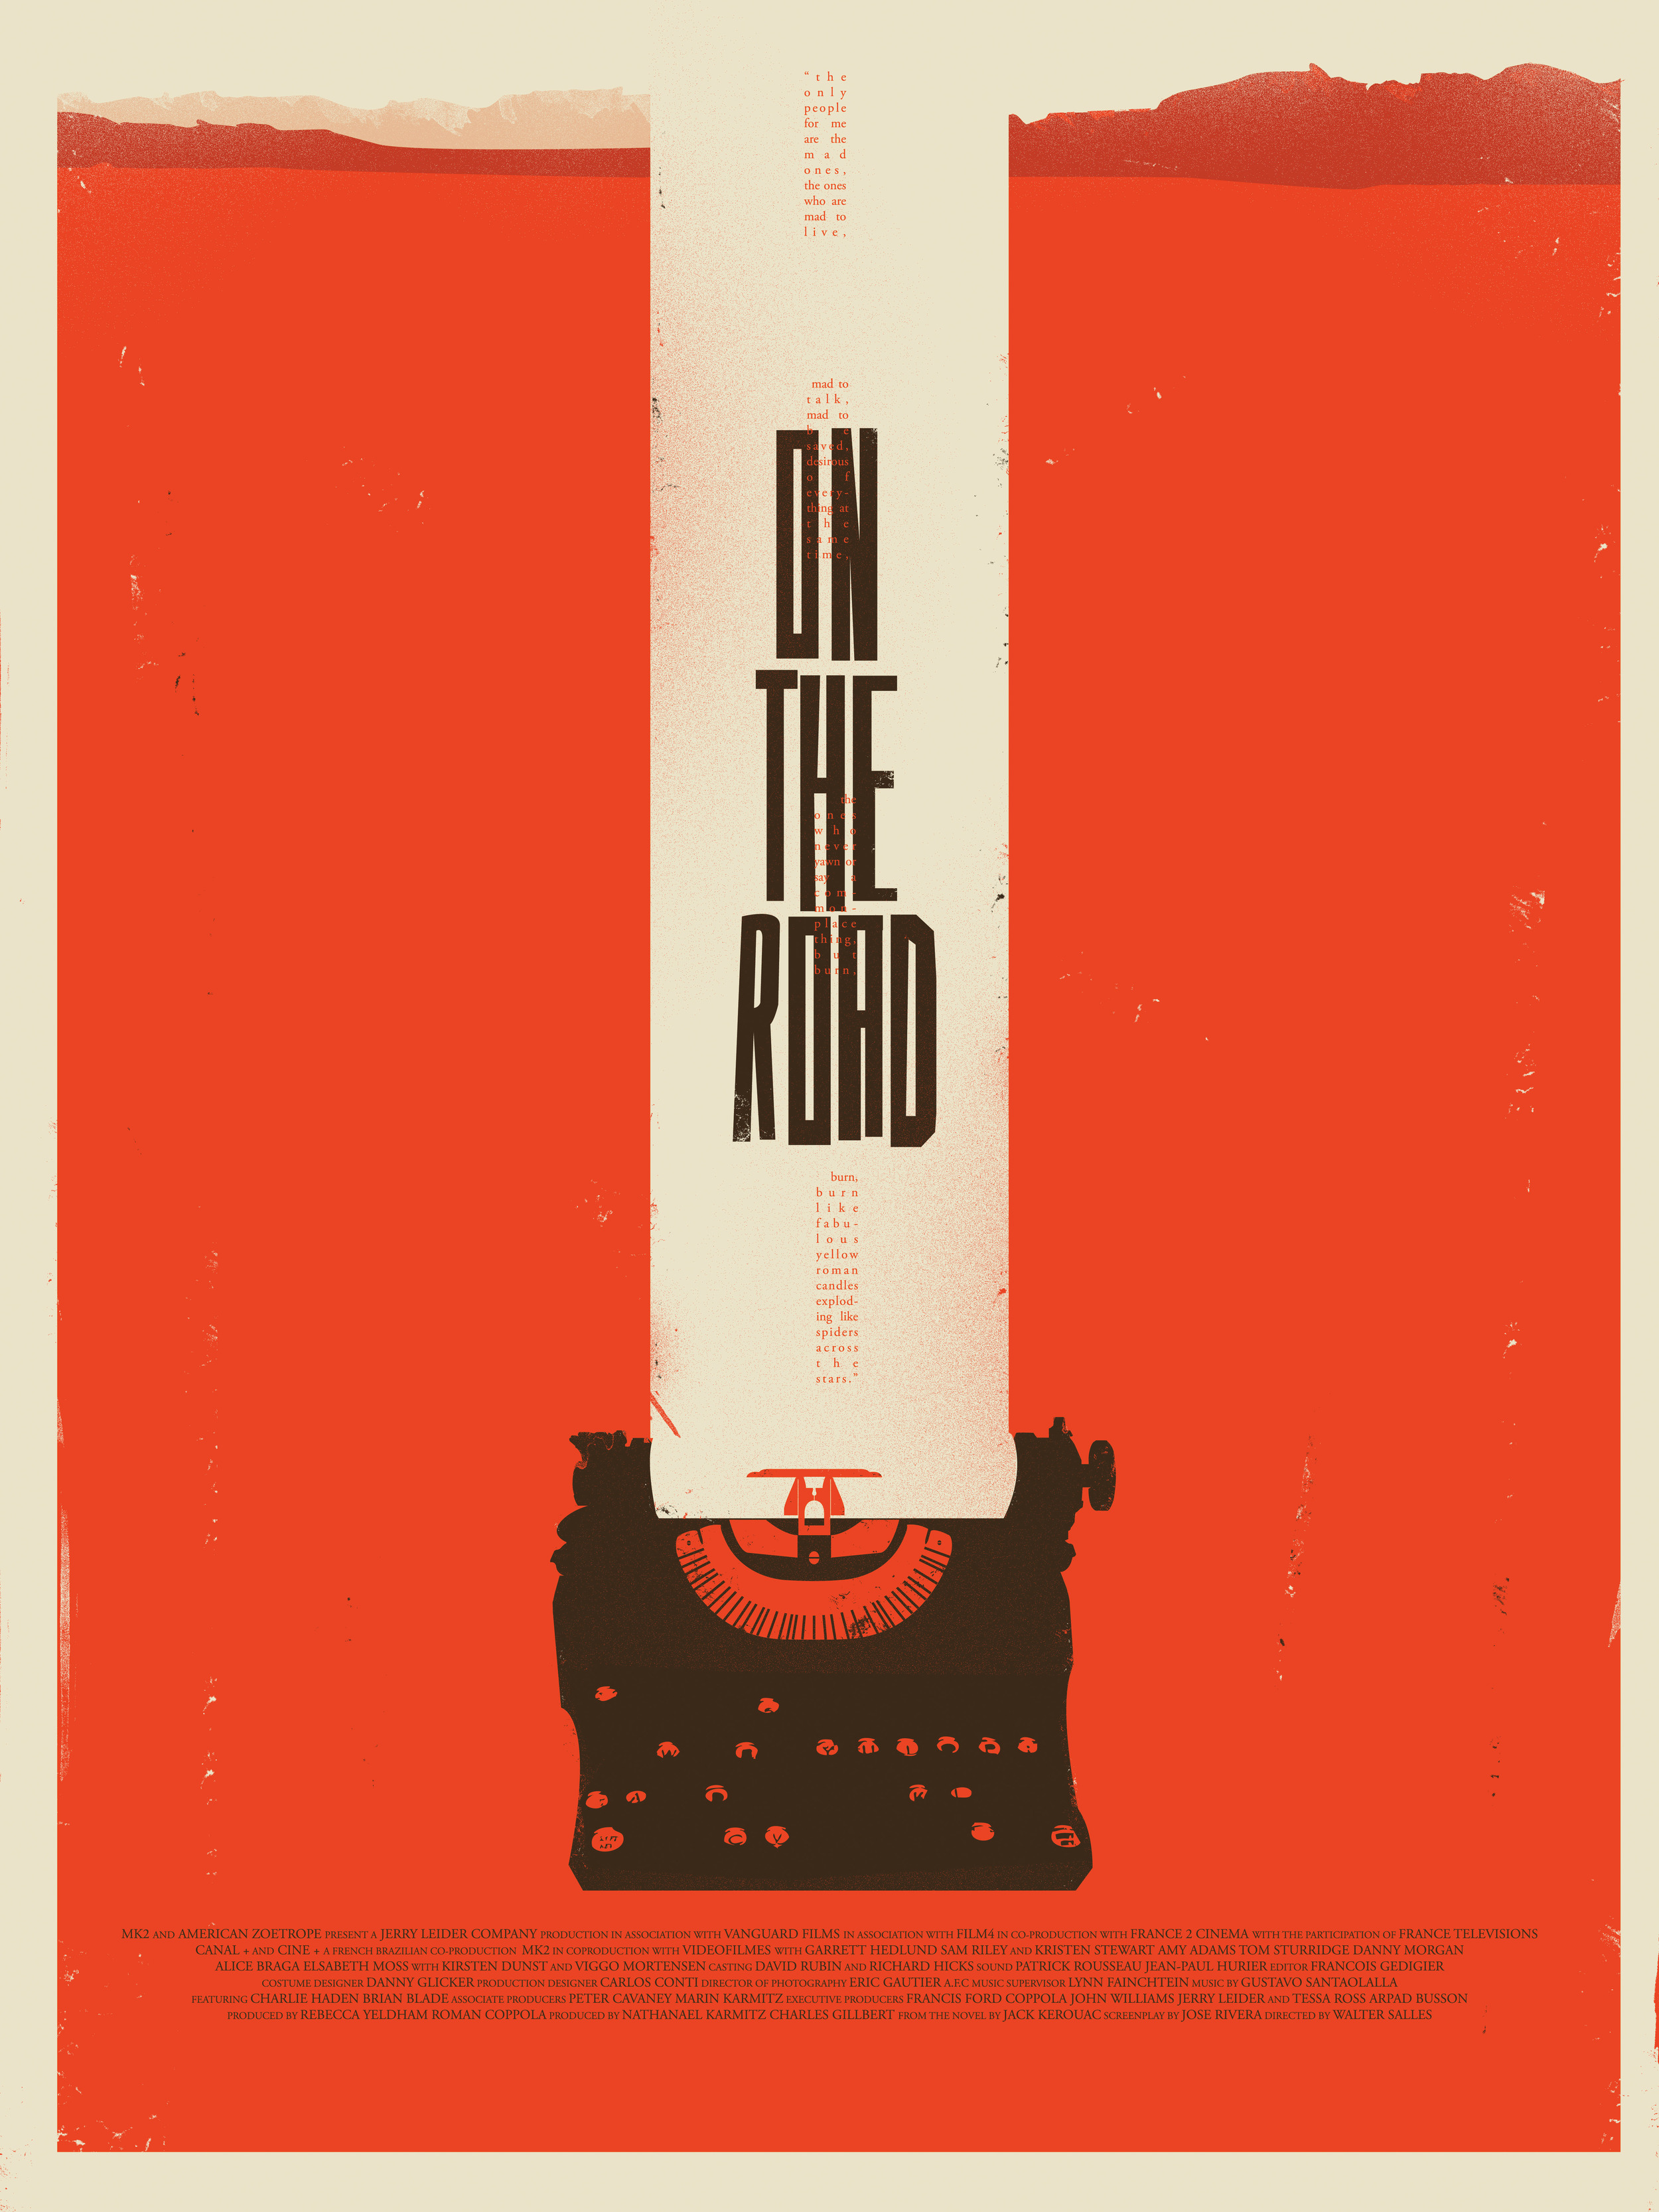 Shortlist: On The Road